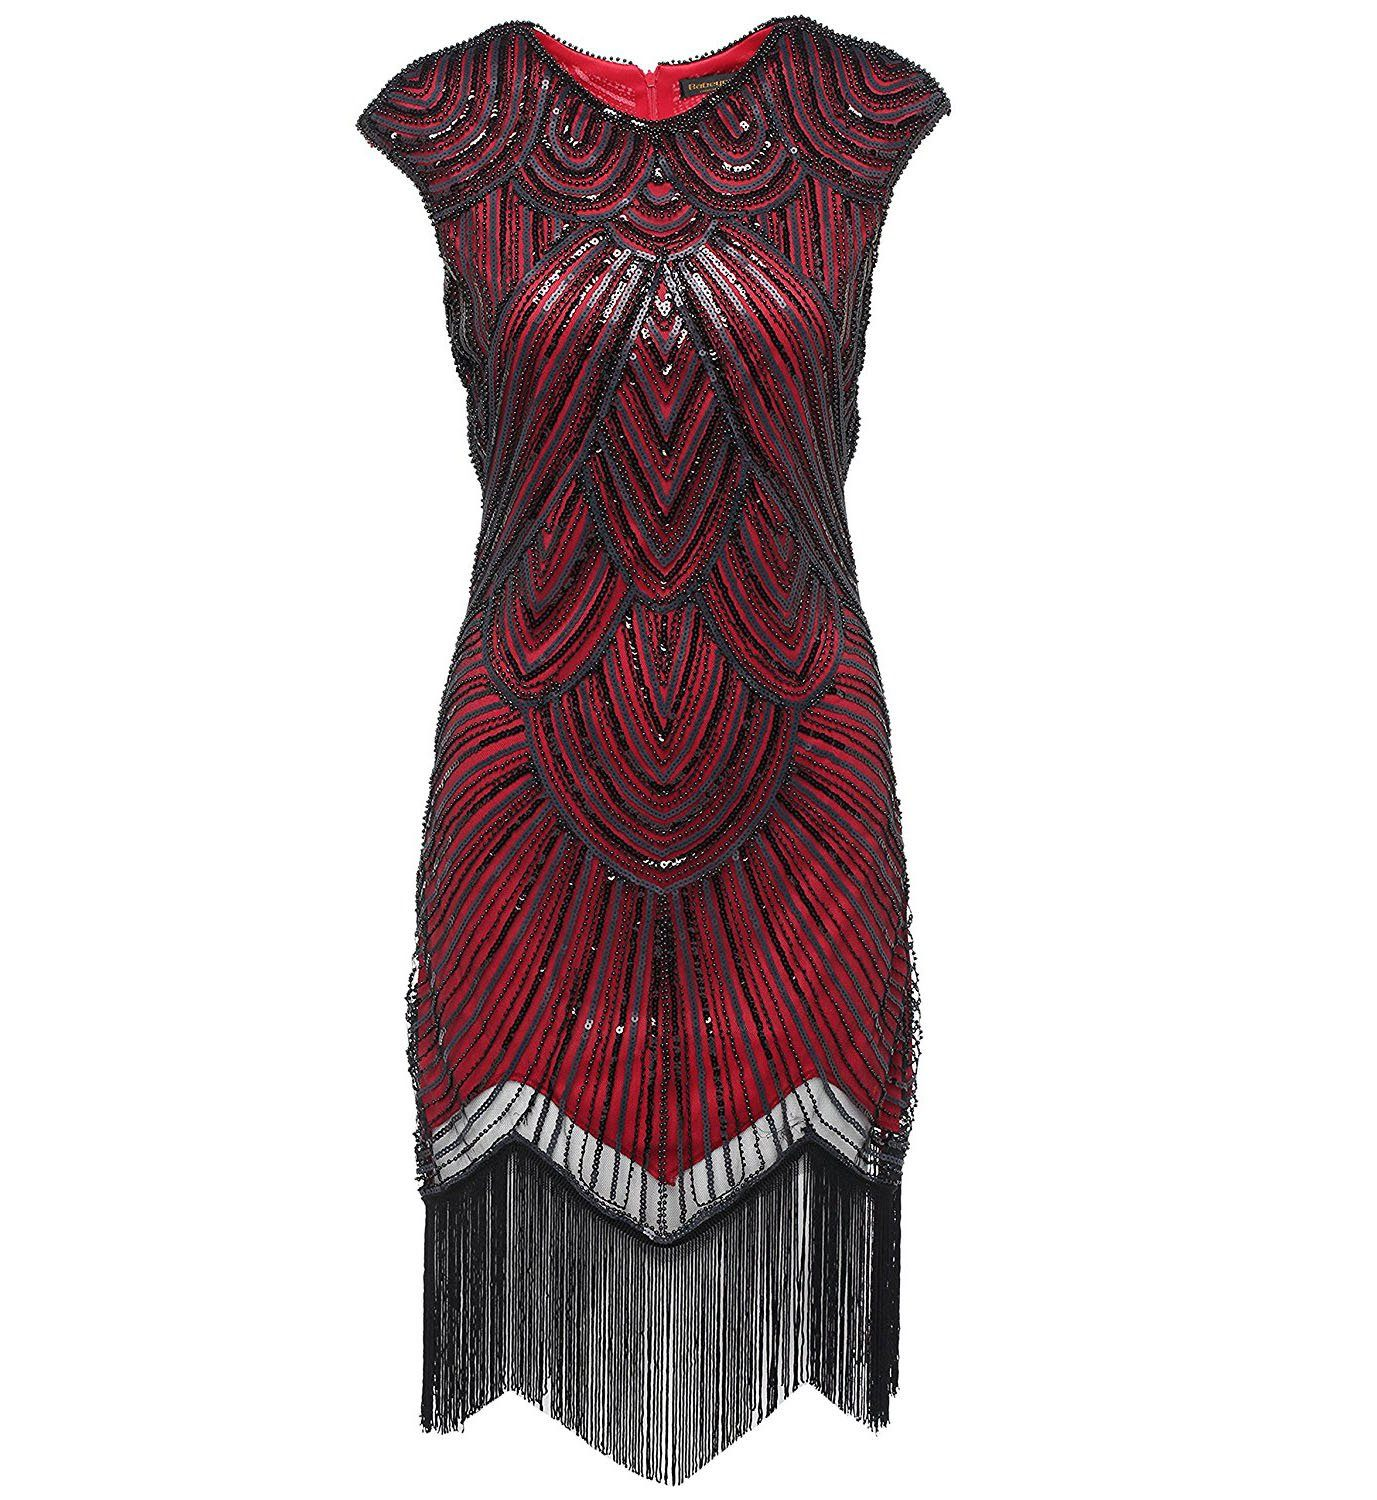 1920s Style Wine Red Sequin Great Gatsby Dresses Peaky Blinders Theme Party|JaosWish